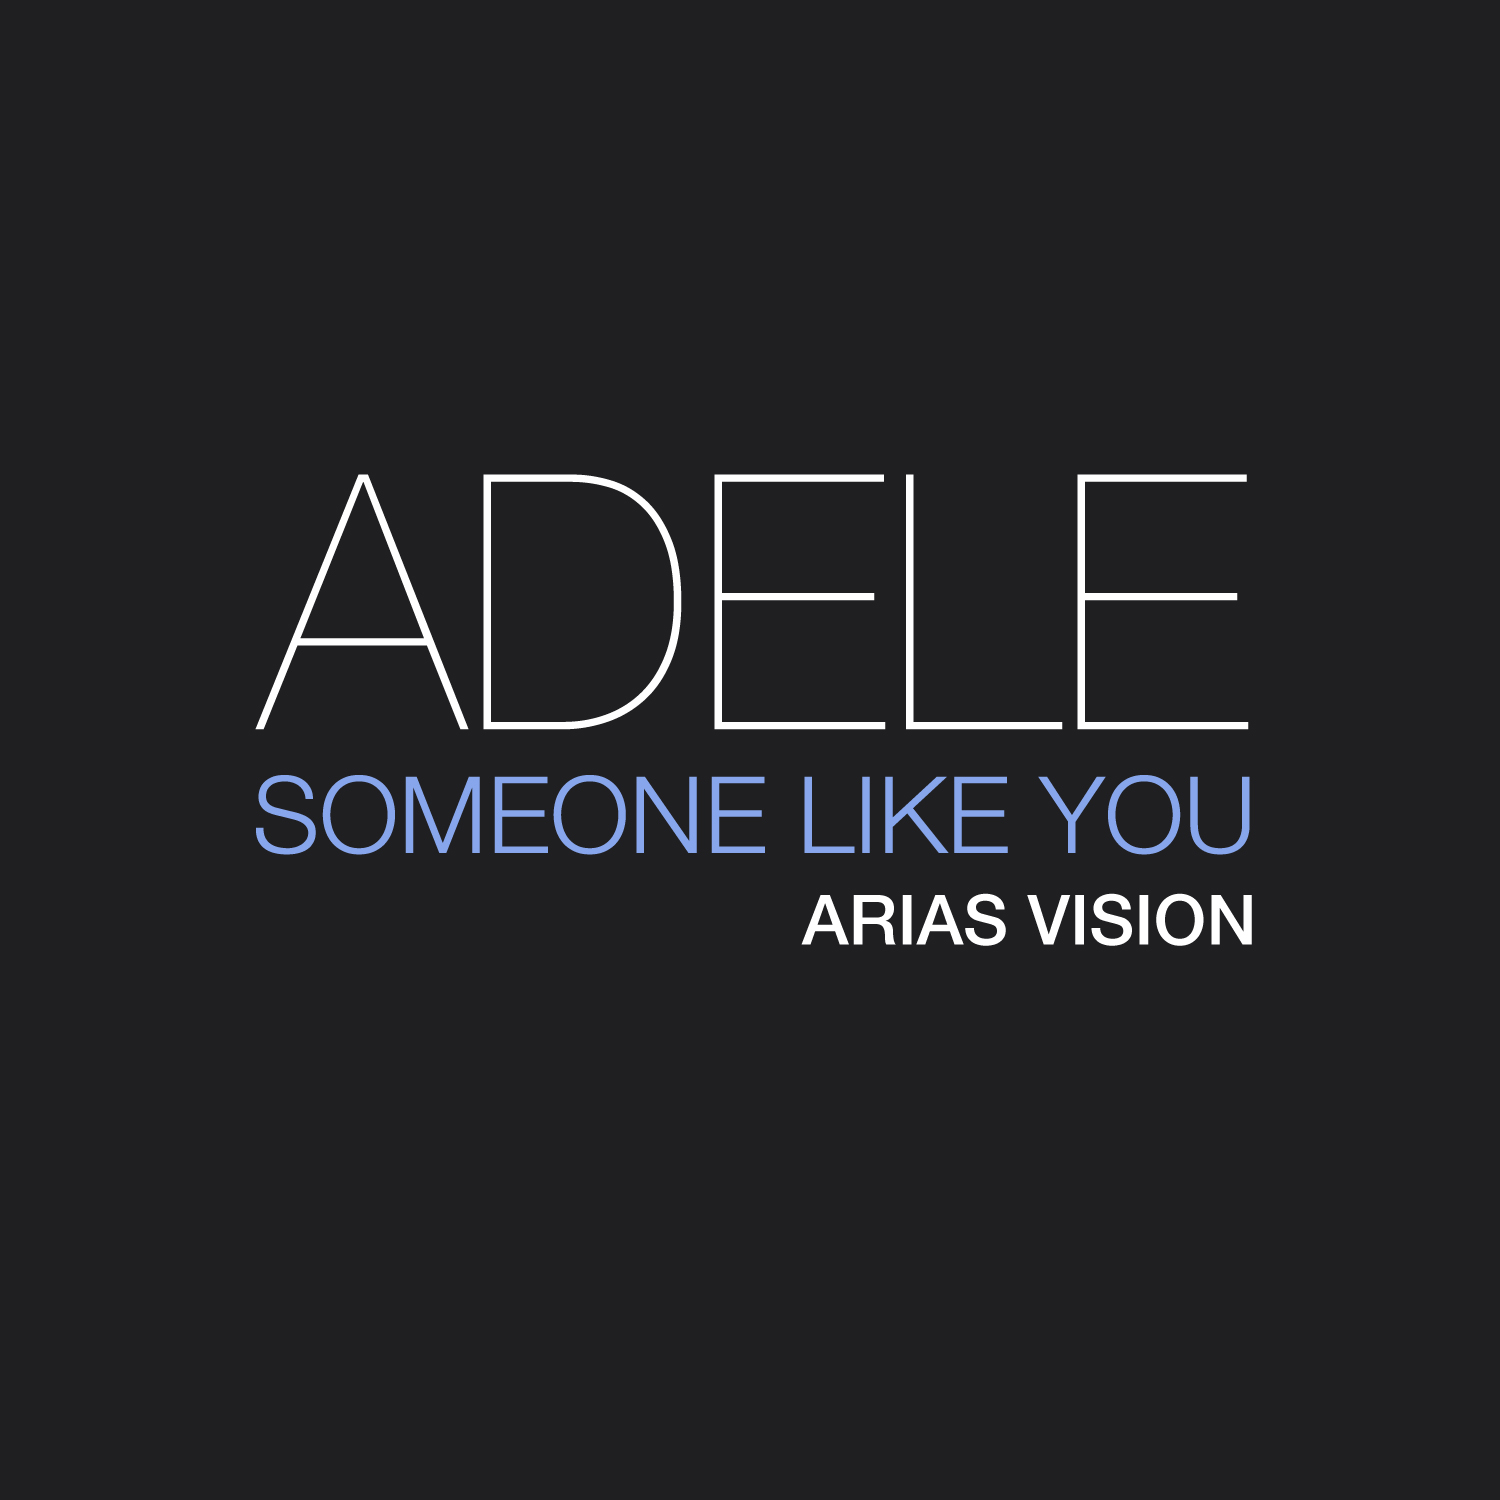 http://3.bp.blogspot.com/-I0xhDYwMAbU/TwahIHPdq6I/AAAAAAAAAYo/xN9NhiEYQPc/s1600/adele-some-one-like-you.jpg